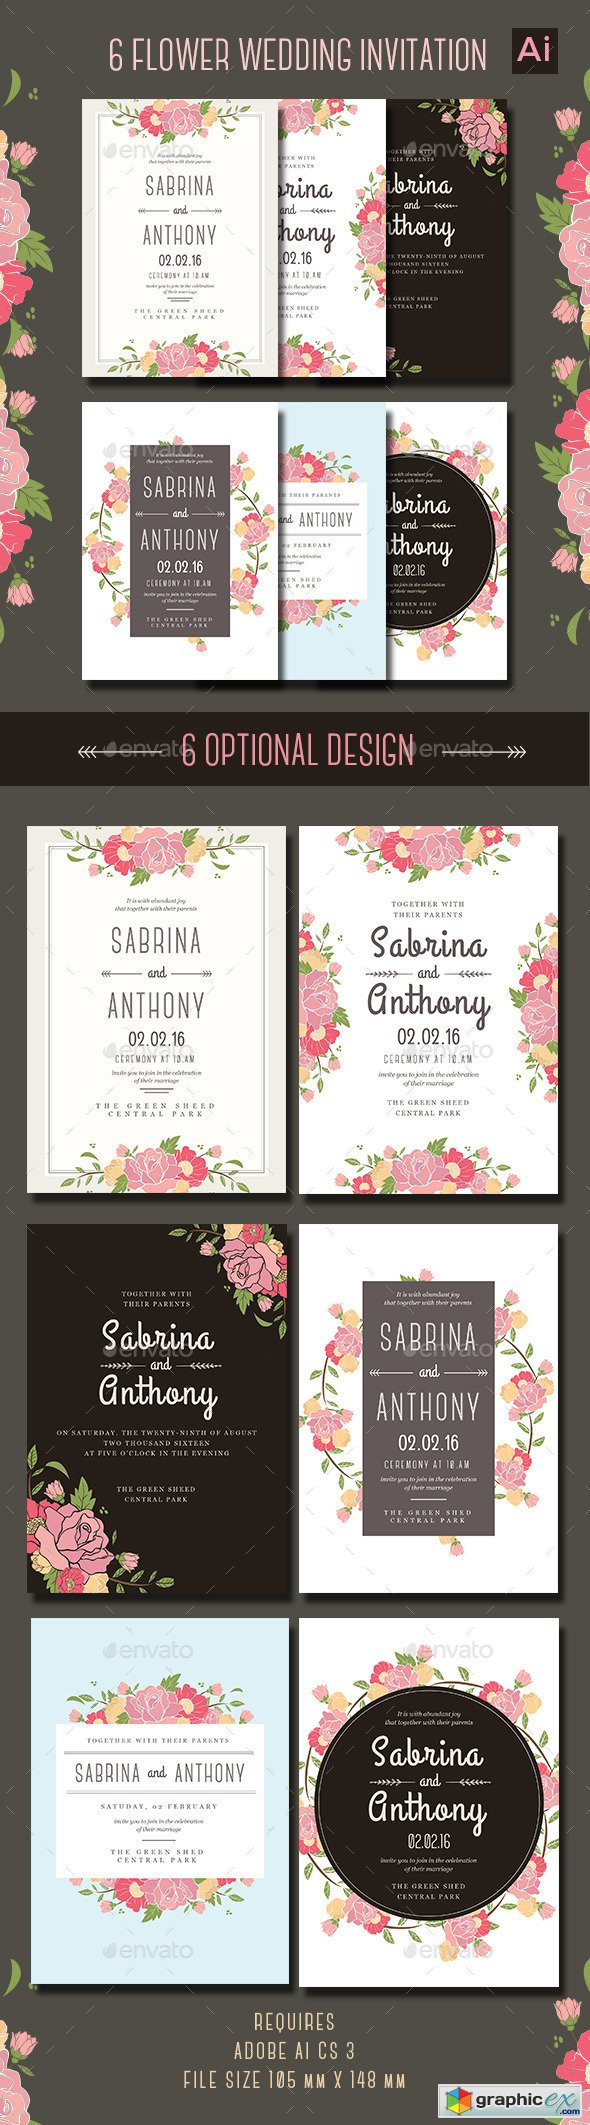 6 Floral Wedding Invitation